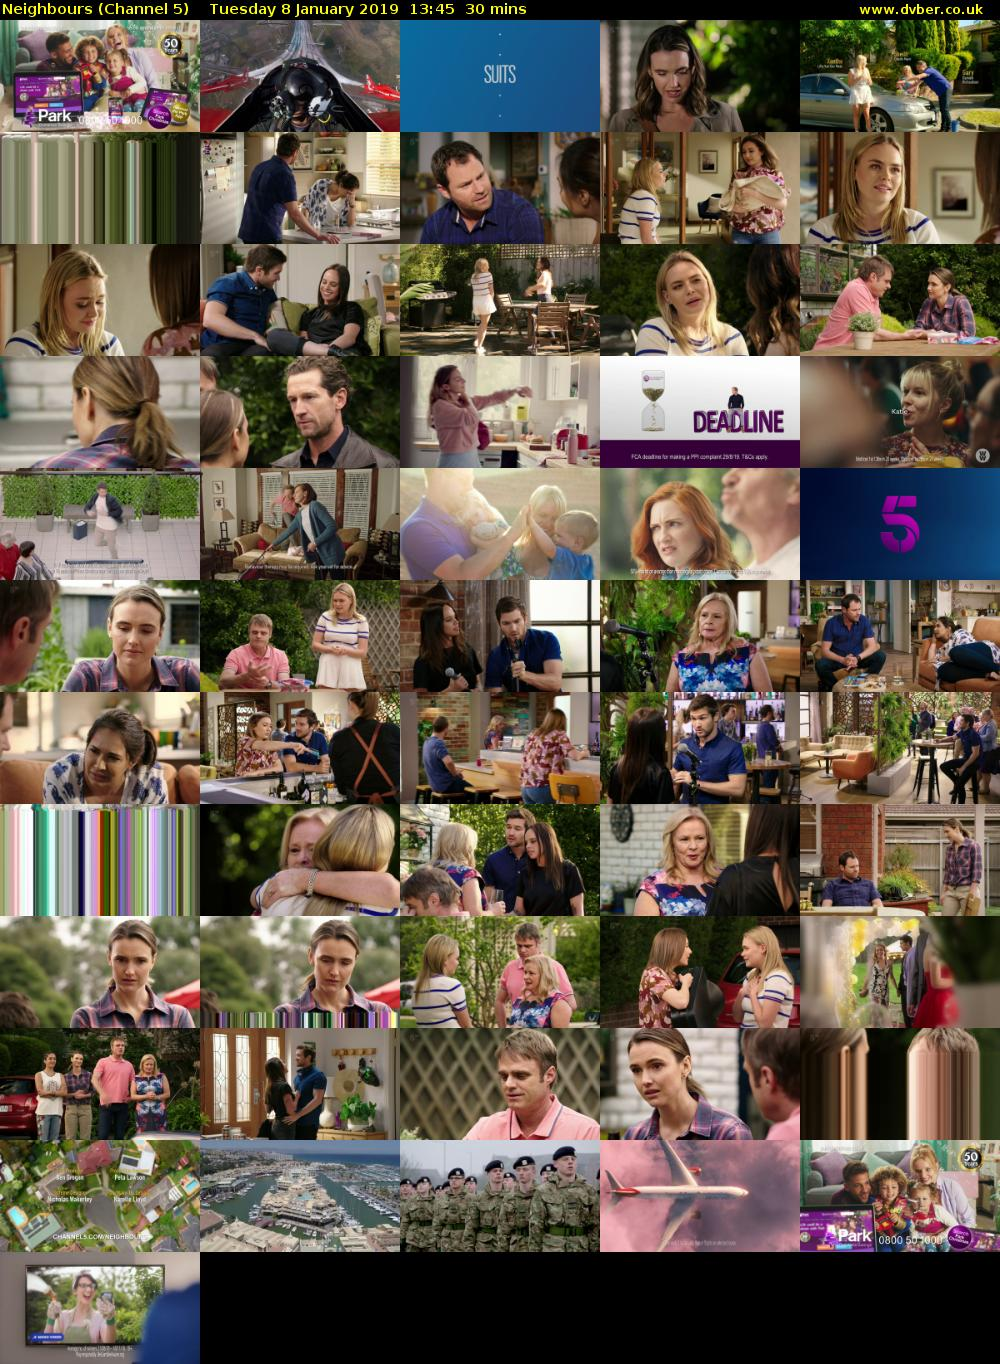 Neighbours (Channel 5) Tuesday 8 January 2019 13:45 - 14:15